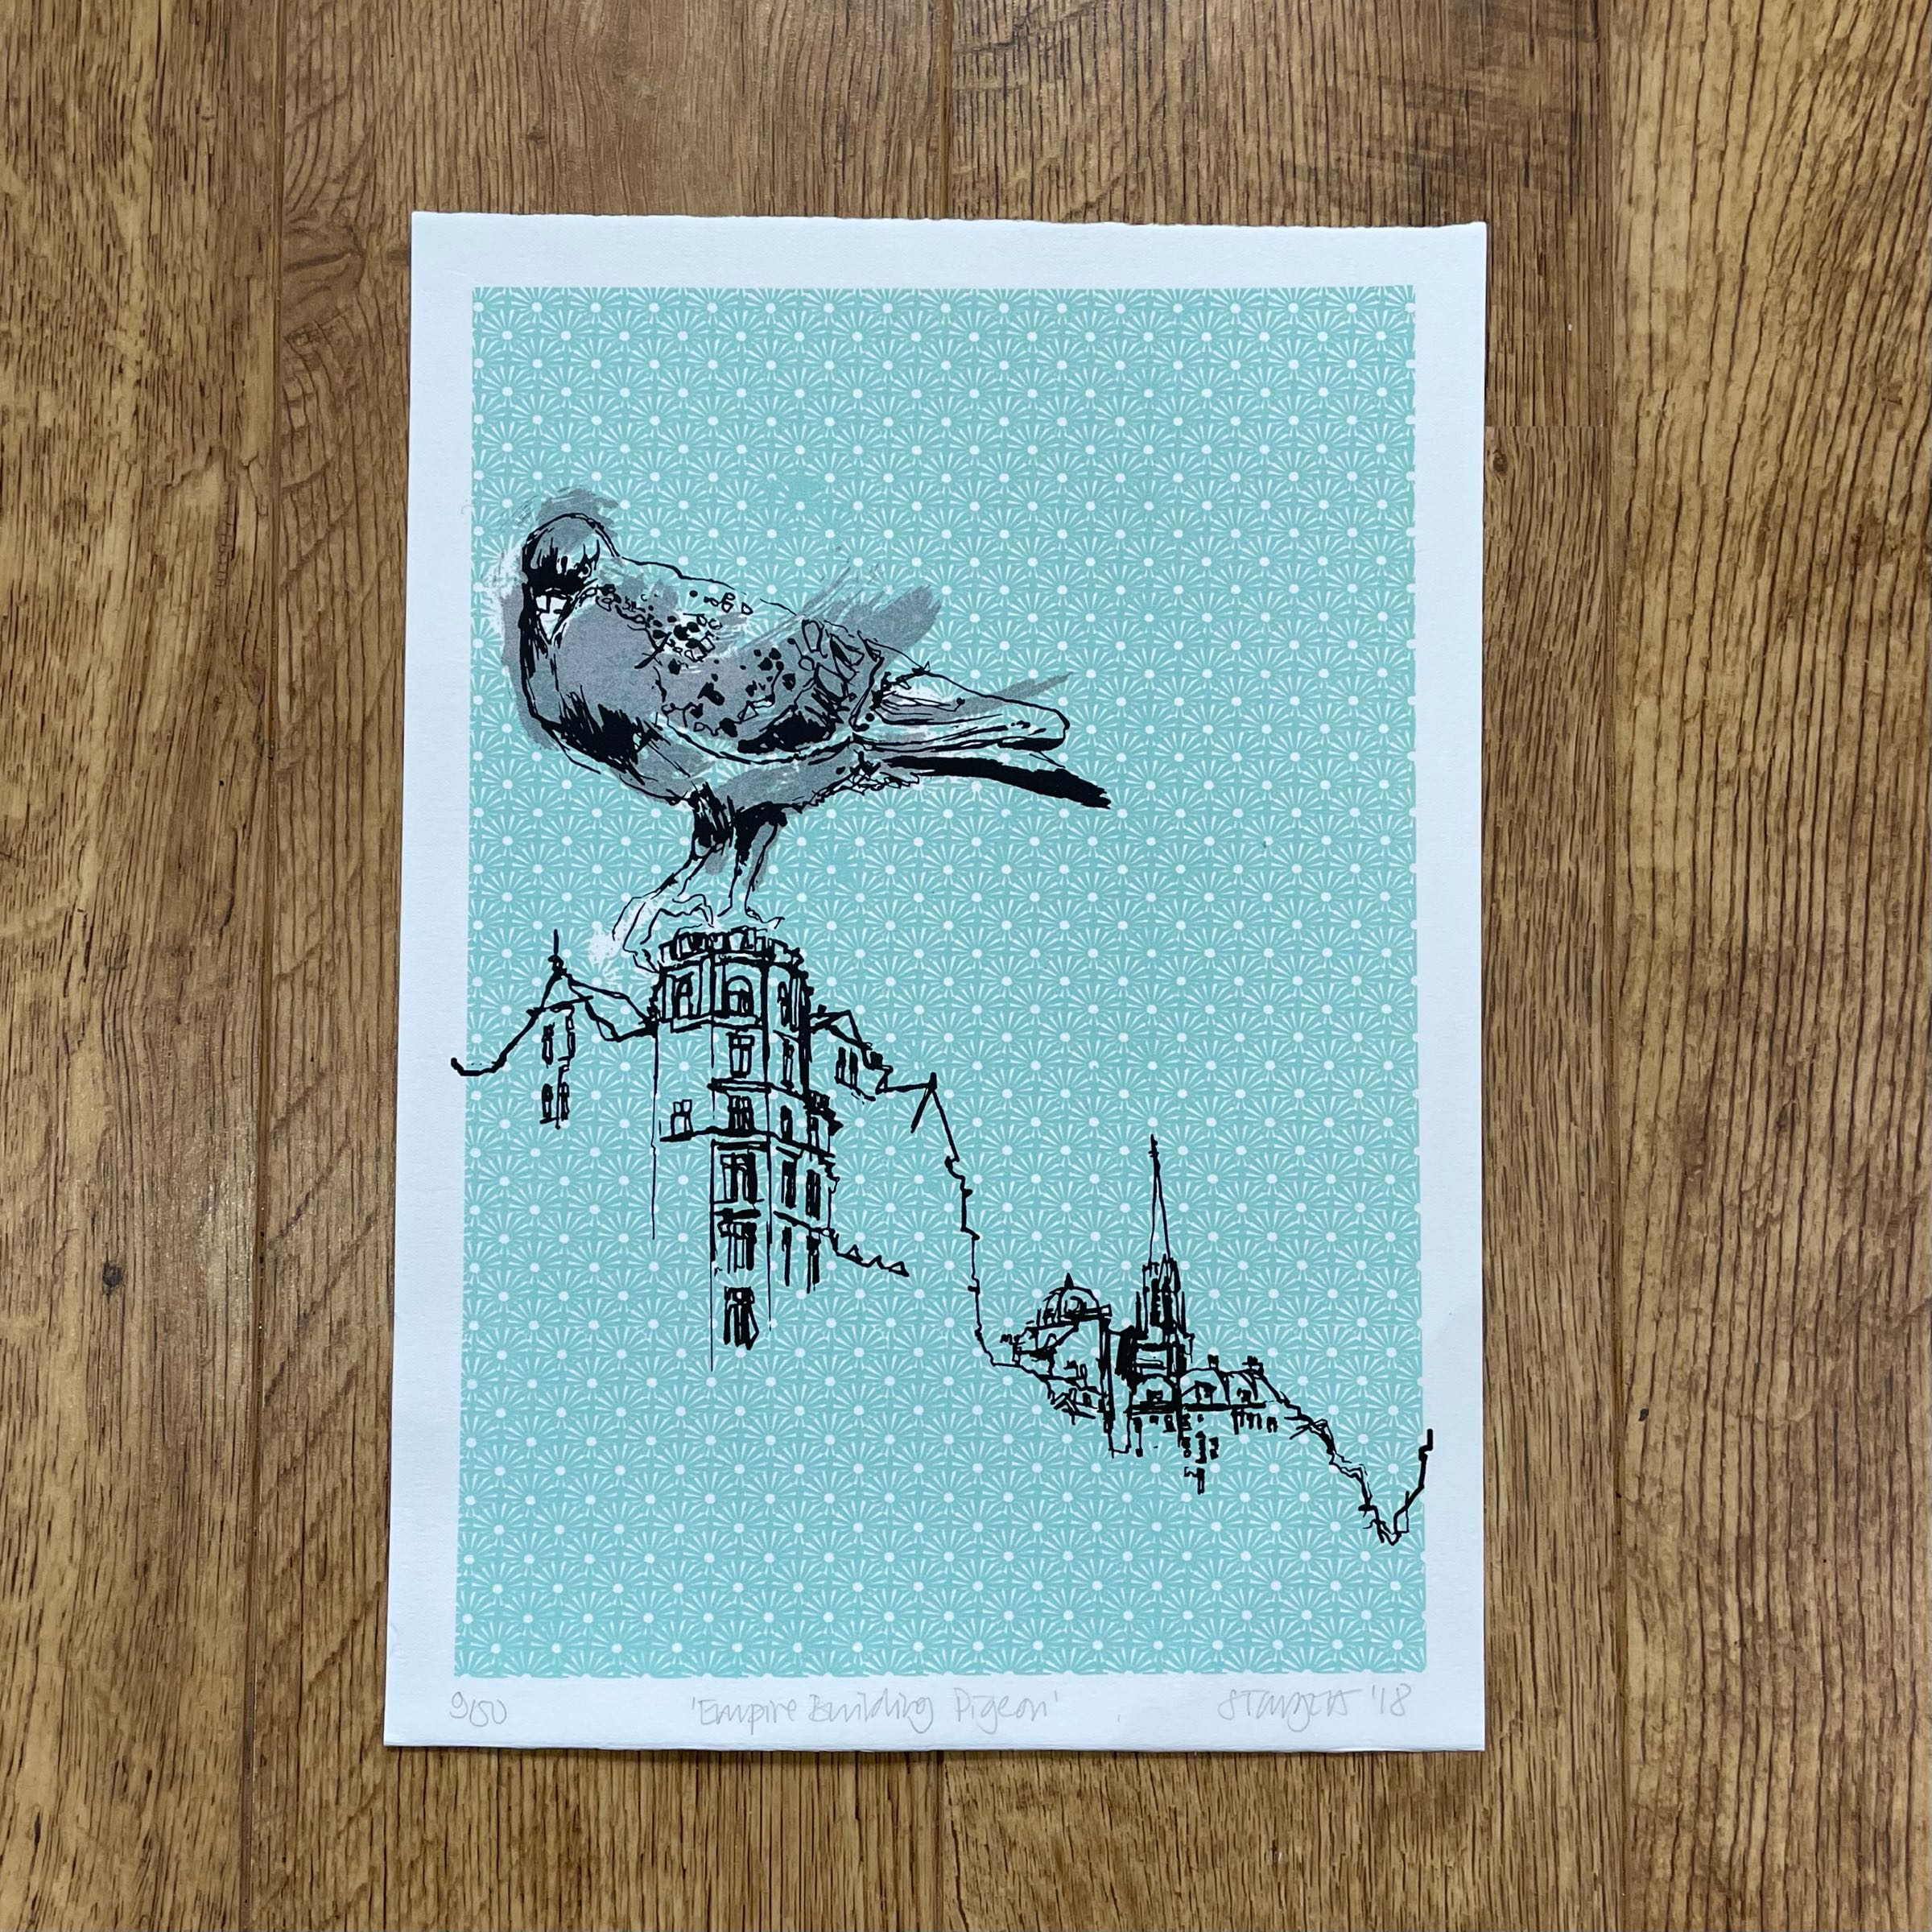 'Empire Building Pigeon' Silkscreen print by Sarah Targett